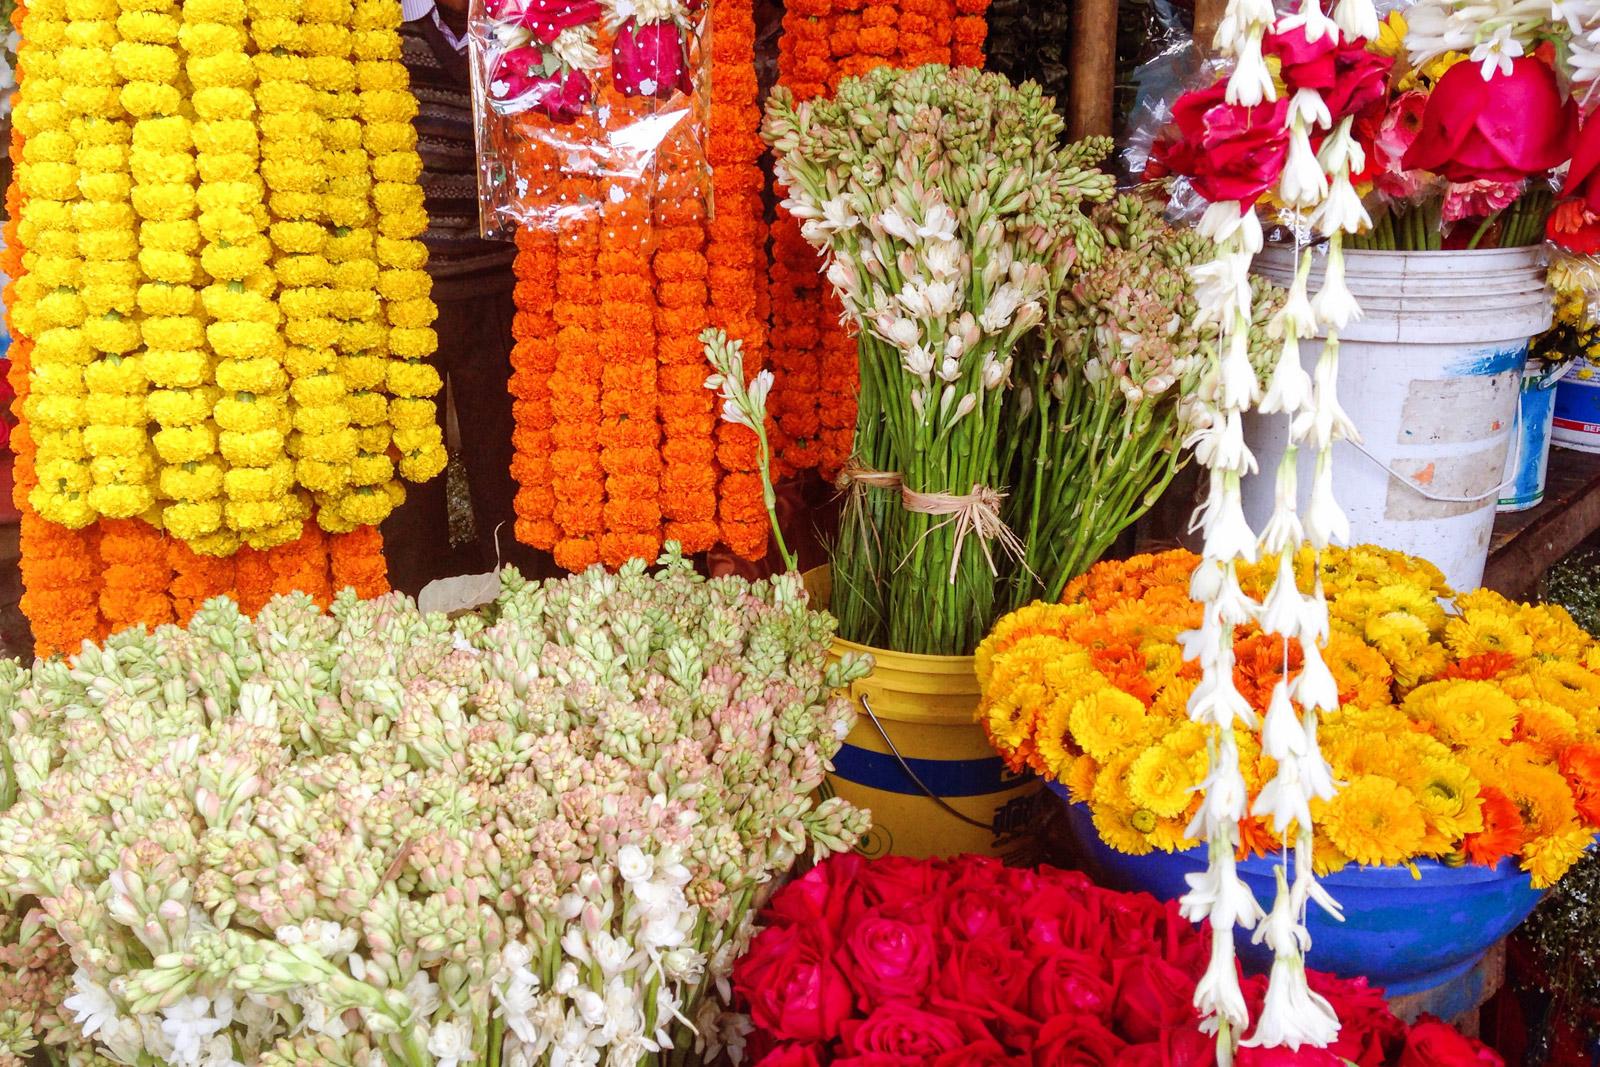 Flower stall in open-air market in Bangladesh